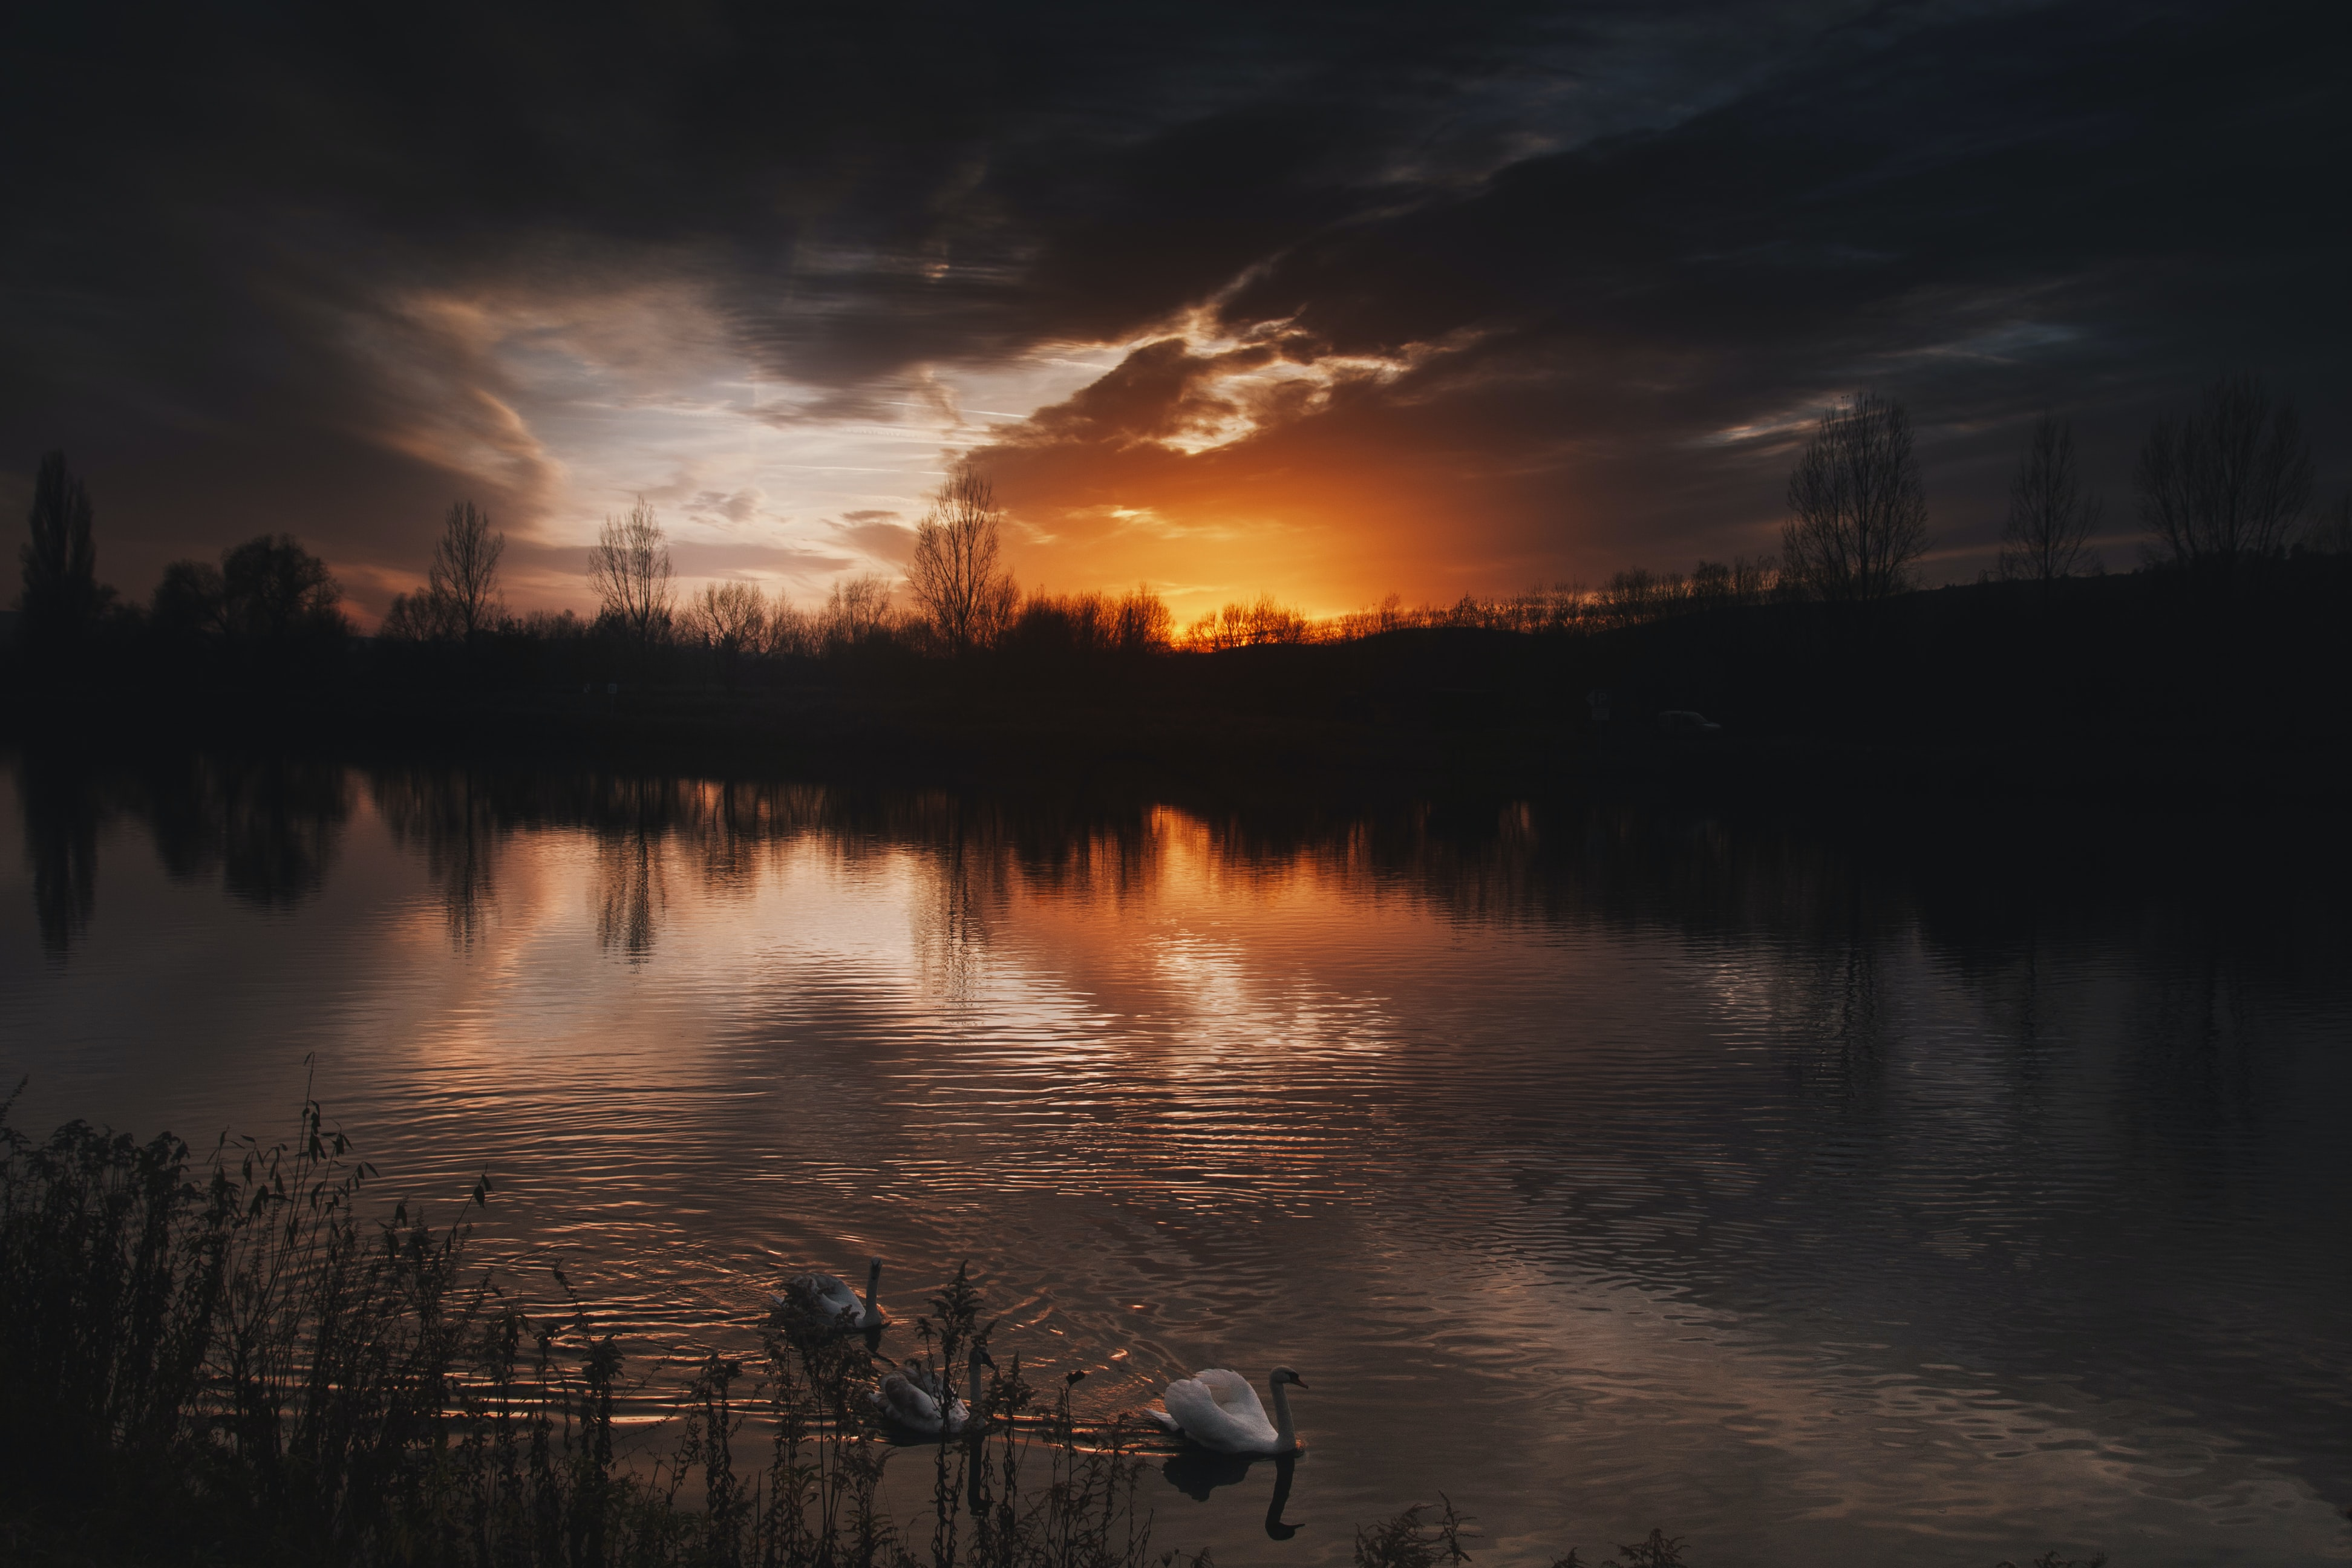 three ducks on body of water with silhouette of trees background during sunset